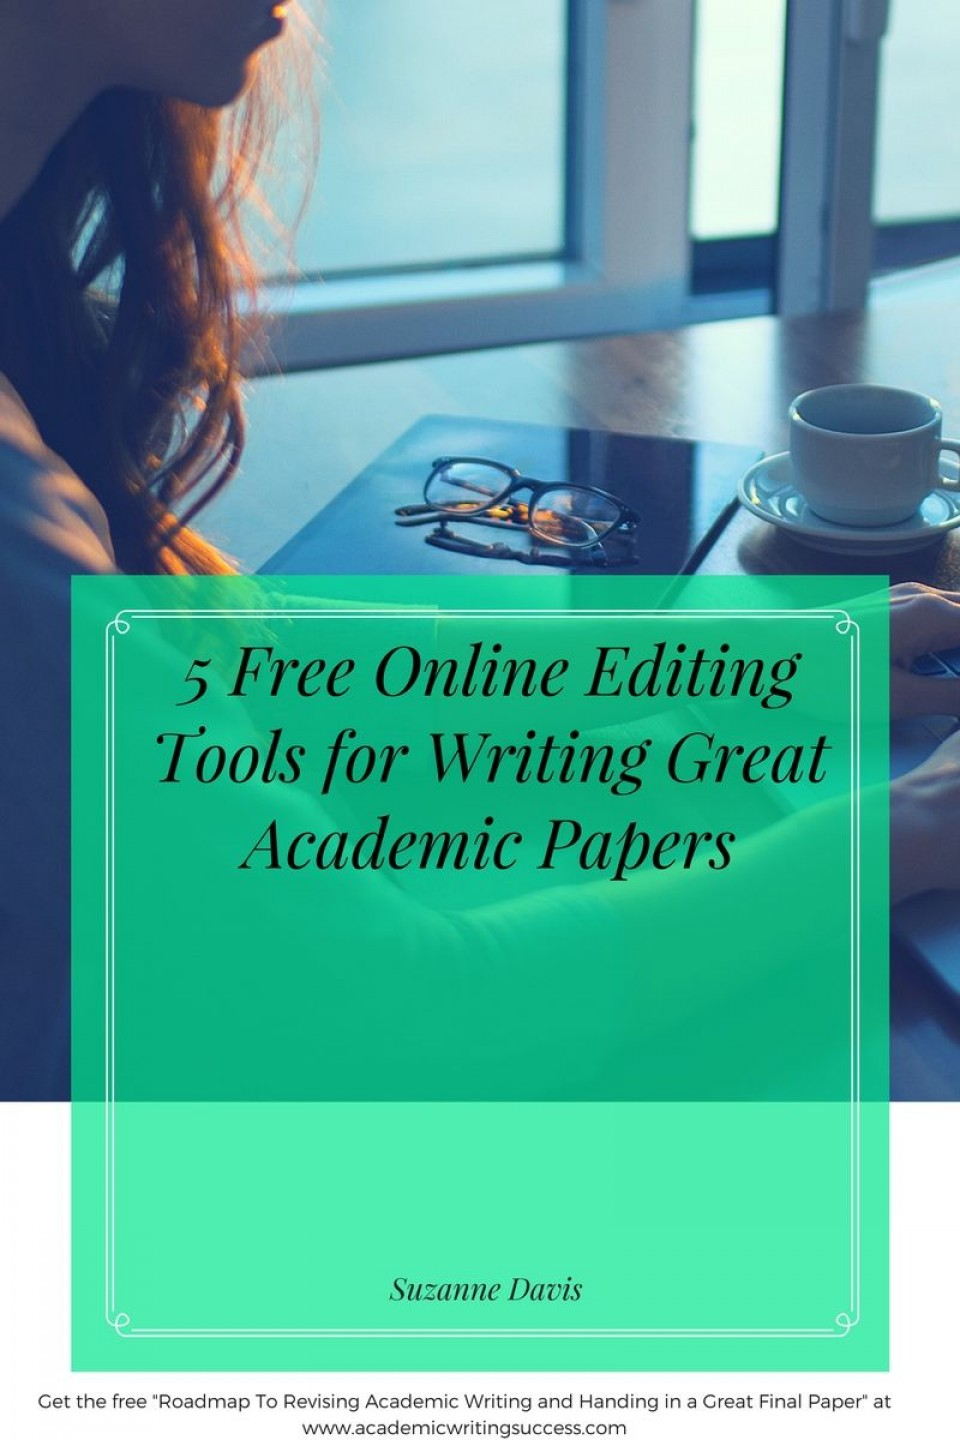 029 Research Paper Free Online Stirring Papers Submission Of Pdf Psychology 960